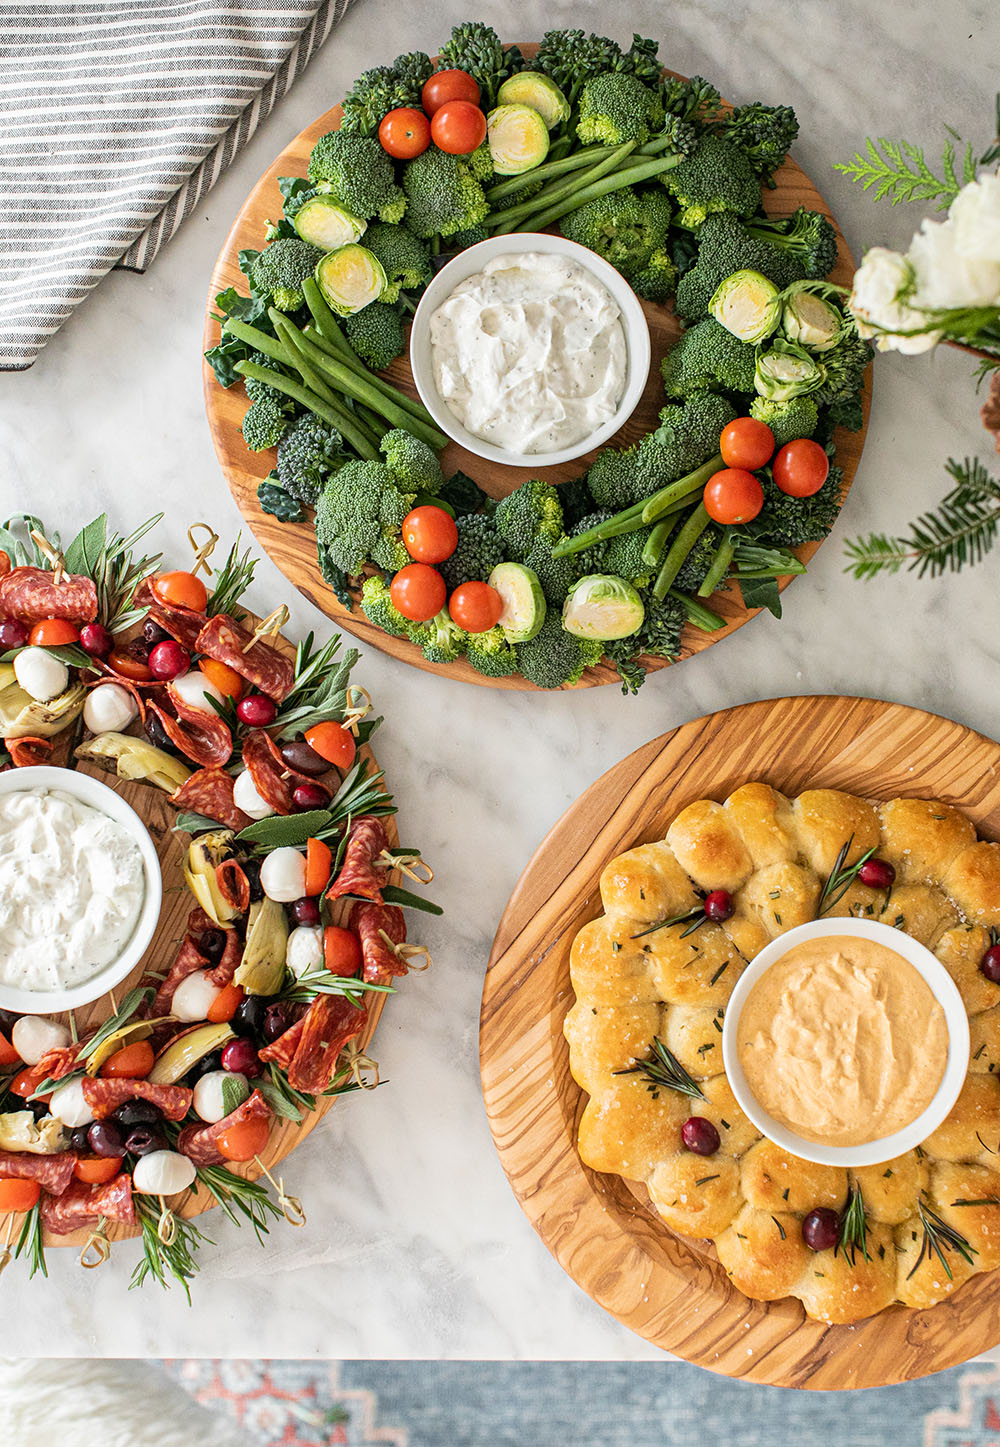 10 Recipes I'm Making Before the Year's End - roomfortuesday.com